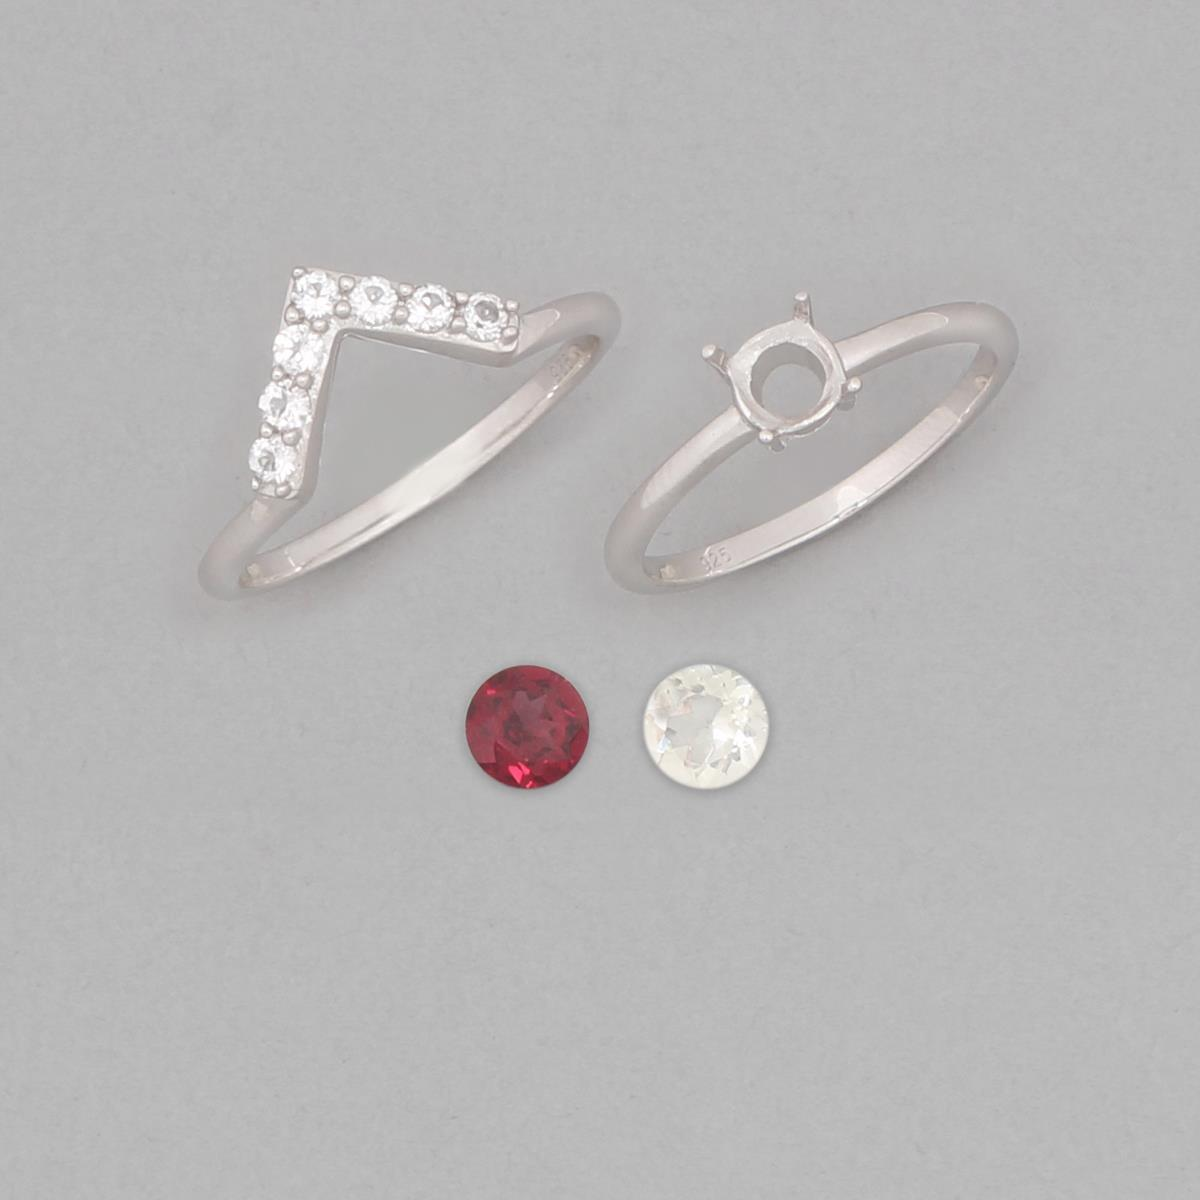 size 9 925 sterling silver set of 2 stacker ring mounts